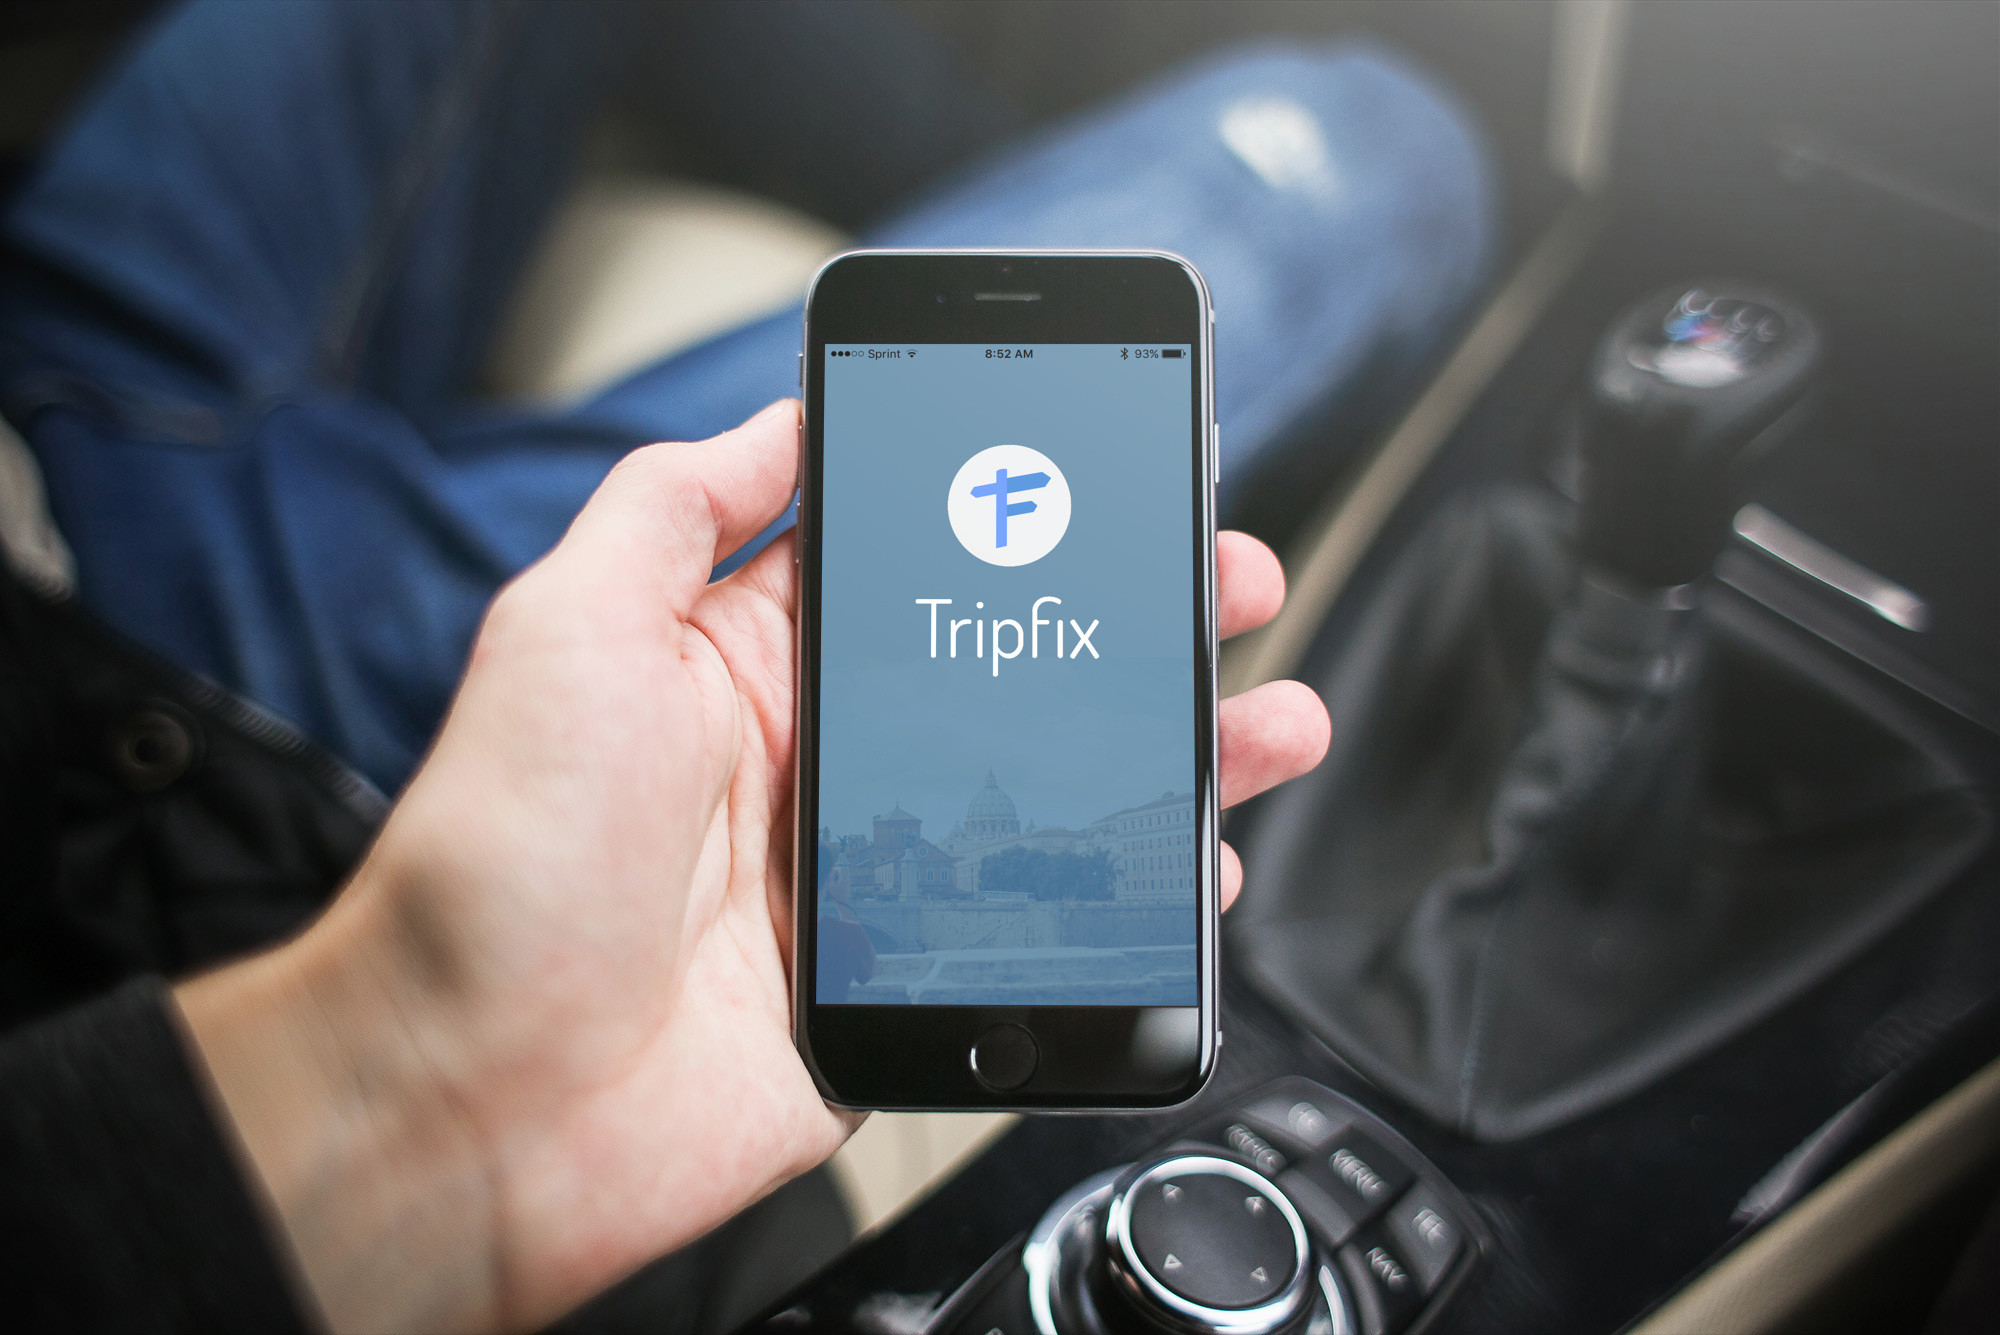 Find top spots to plan your next trip in minutes with Tripfix